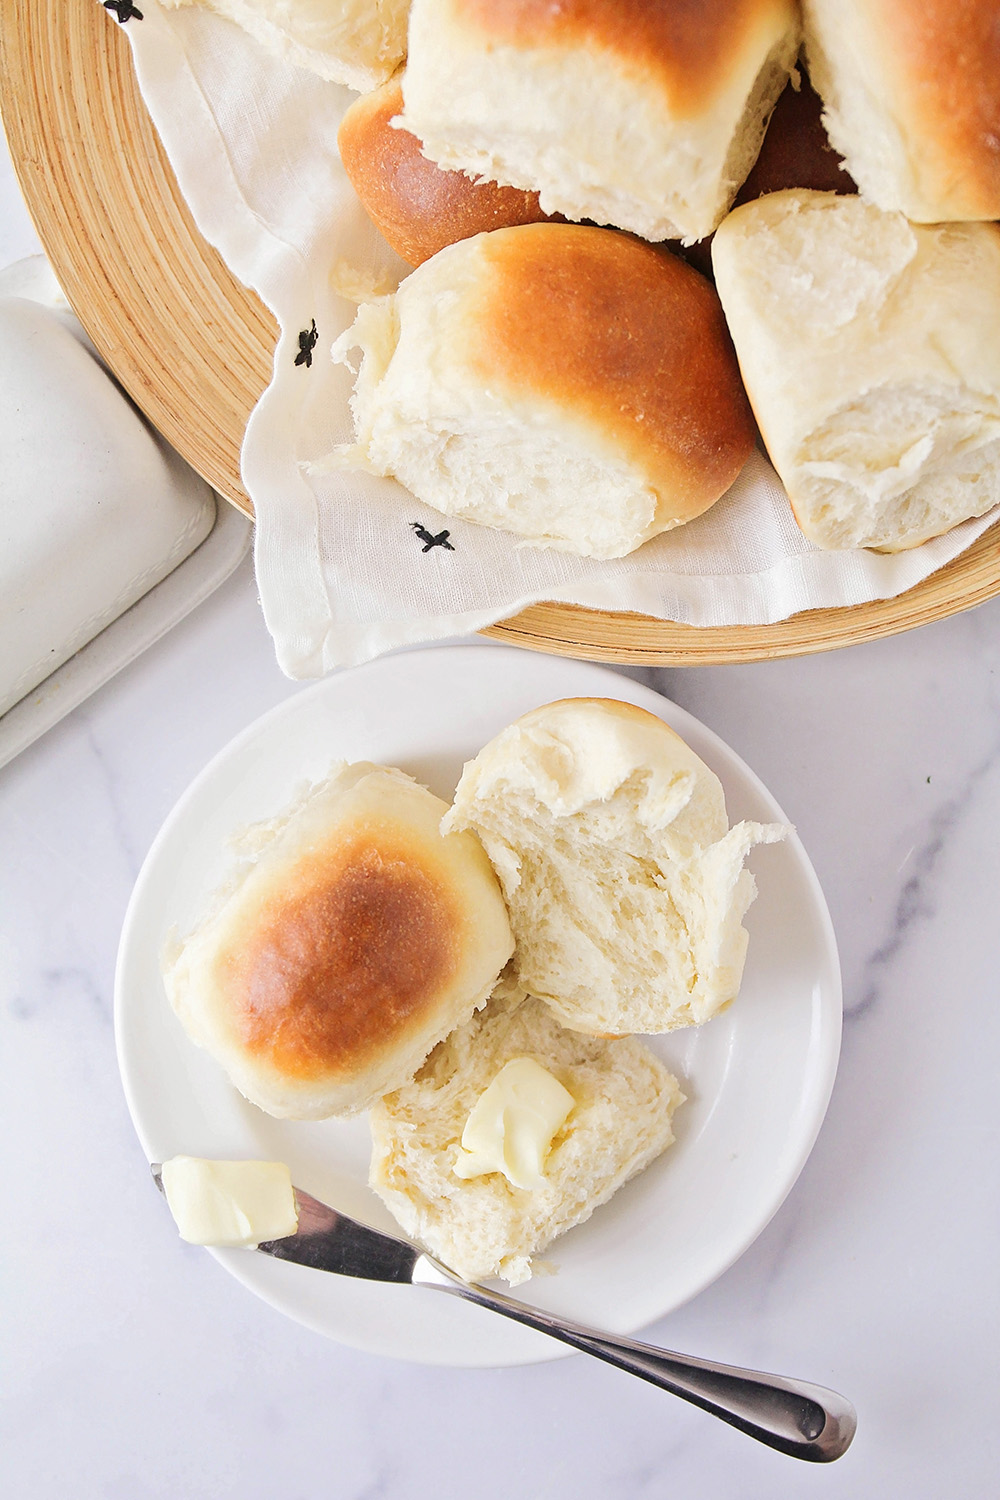 These light and soft pull-apart rolls are so delicious, and easy to make, too! They're the perfect dinner roll!